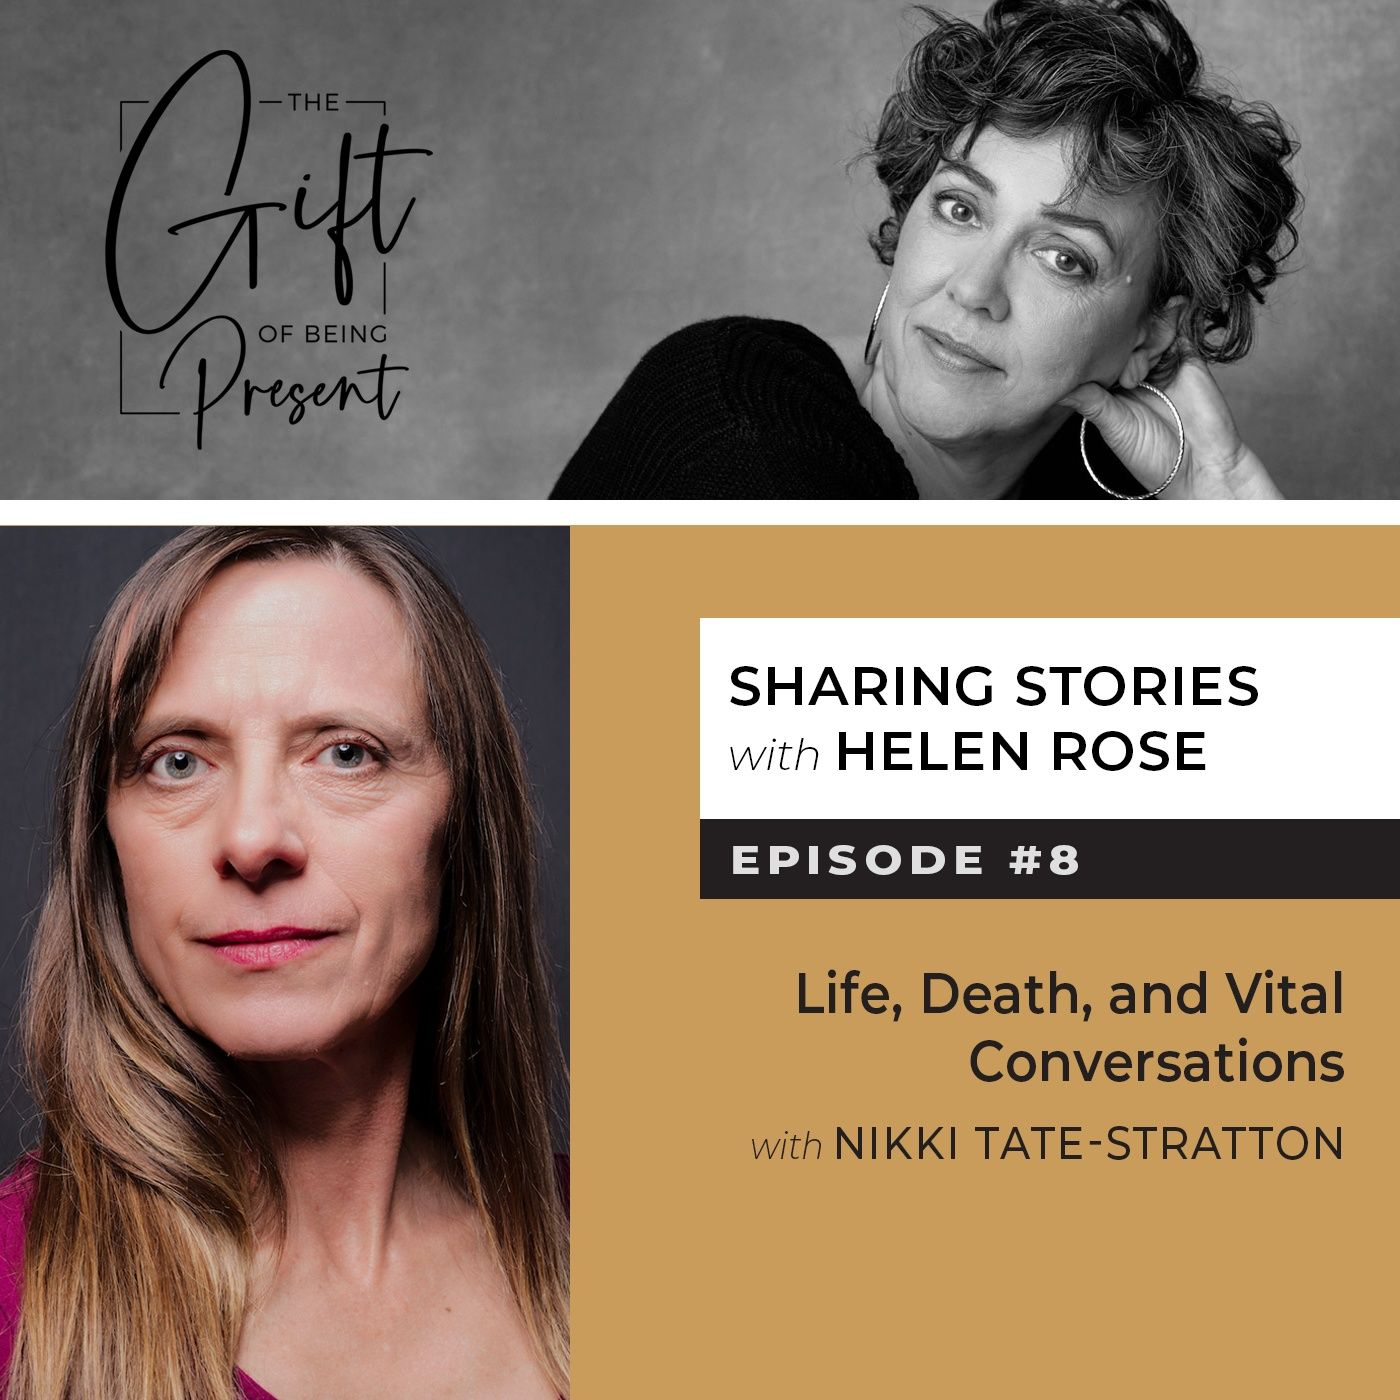 Life, Death, and Vital Conversations with Nikki Tate-Stratton